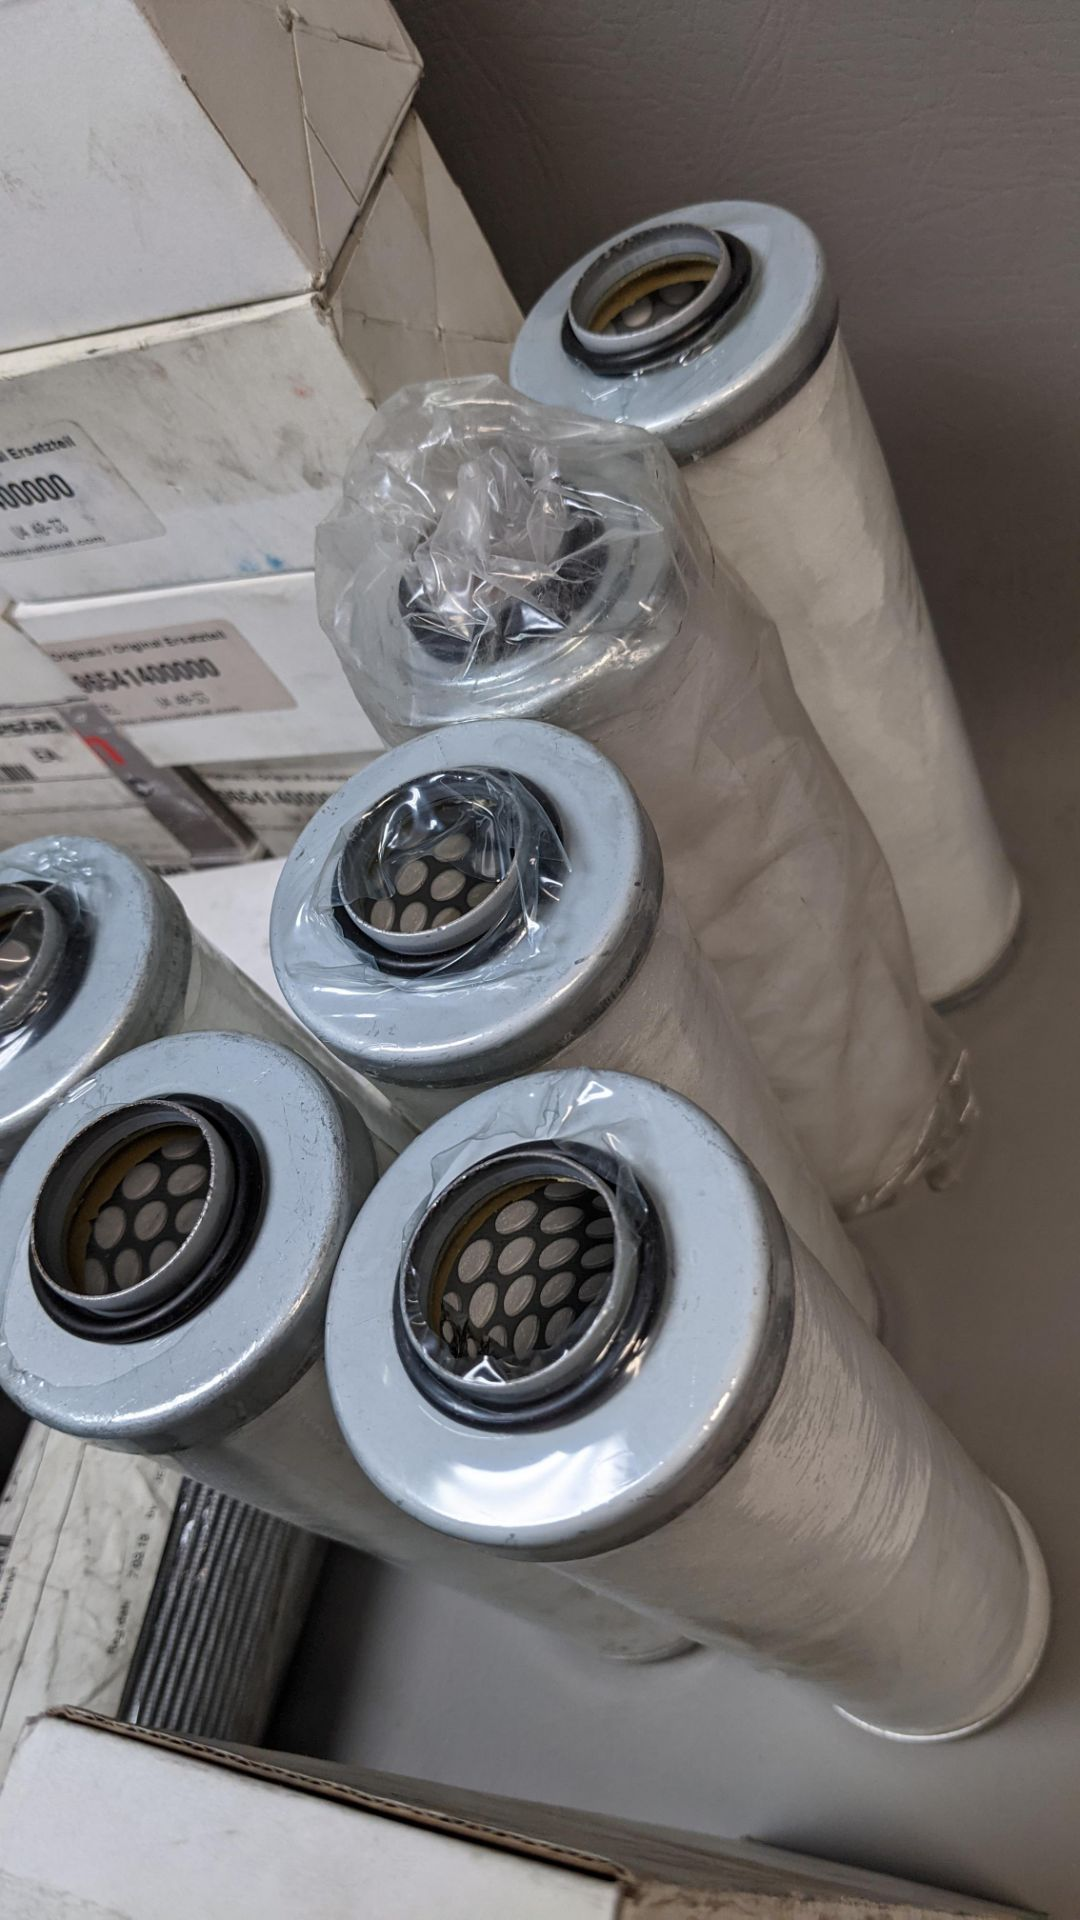 LARGE LOT OF VARIOUS NEW INDUSTRIAL FILTERS - Image 12 of 14